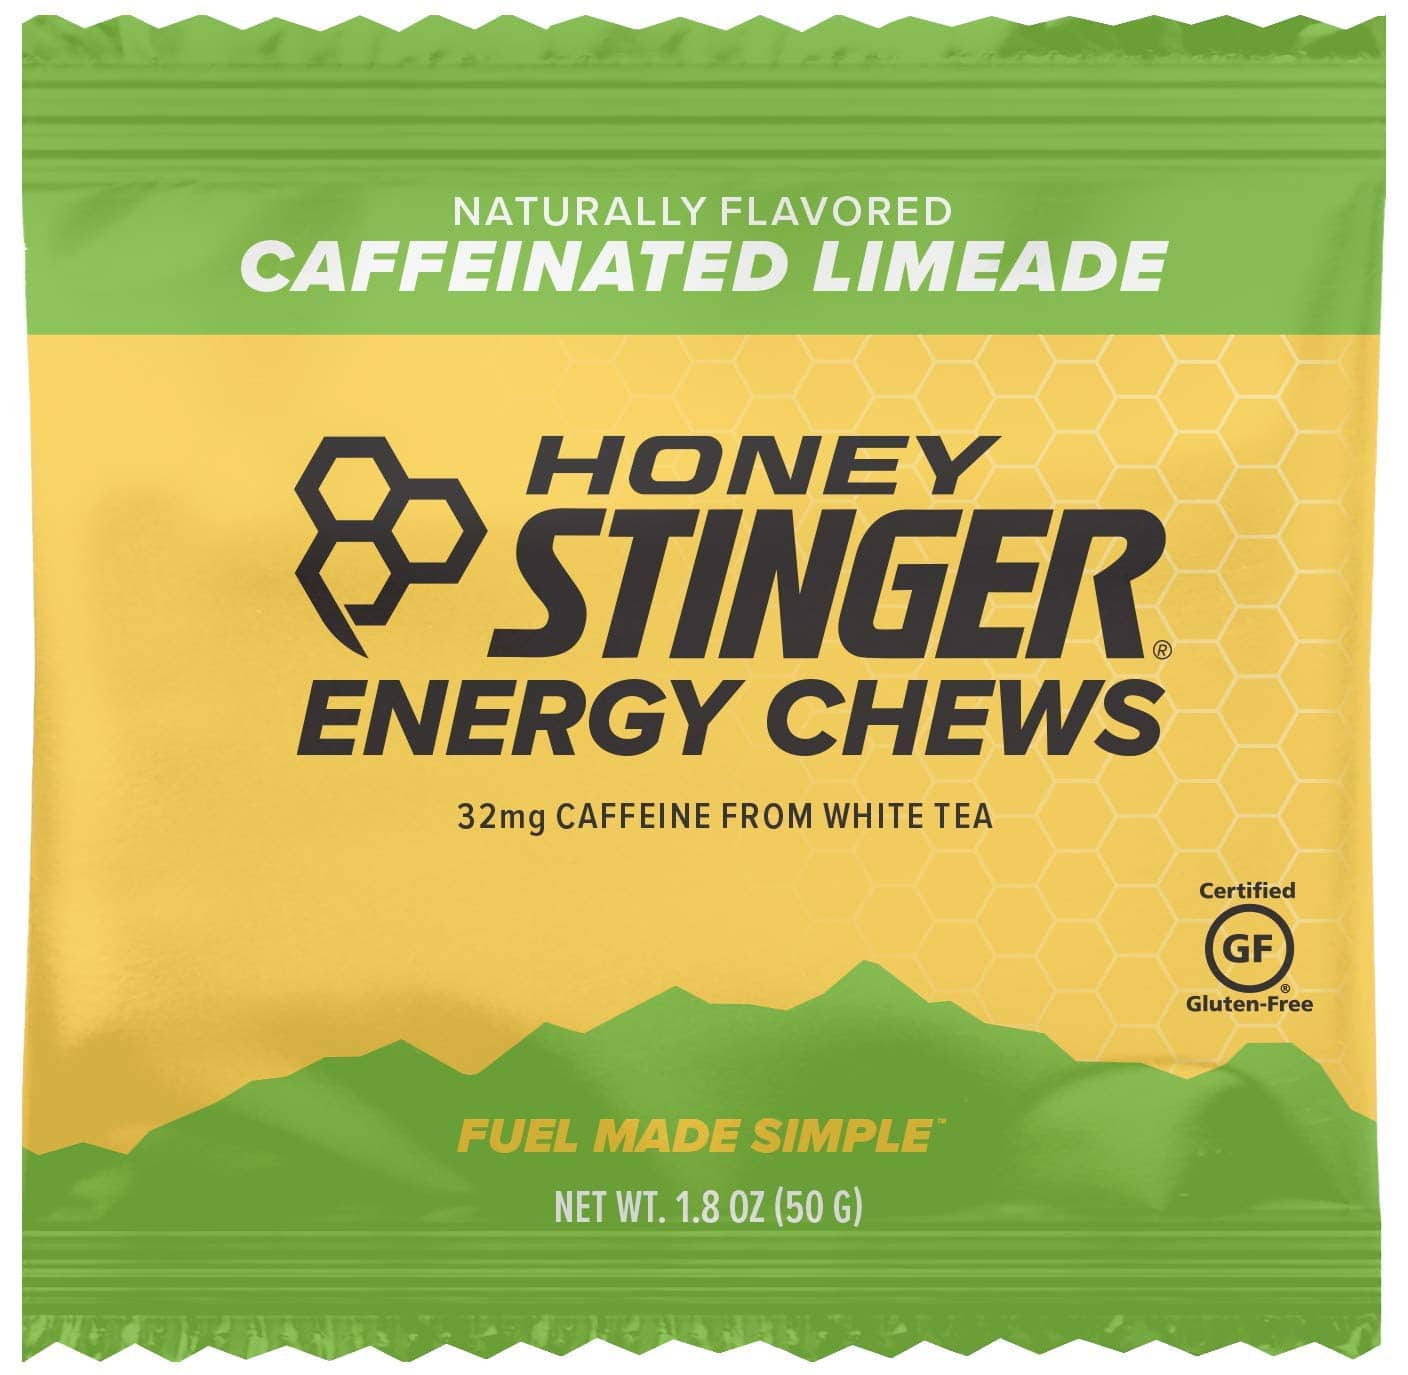 Honey Stinger Organic Energy Chews, Limeade, Naturally Caffeinated, Sports Nutrition, 1.8 Ounce (Pack of 12) $6.97 with s/s